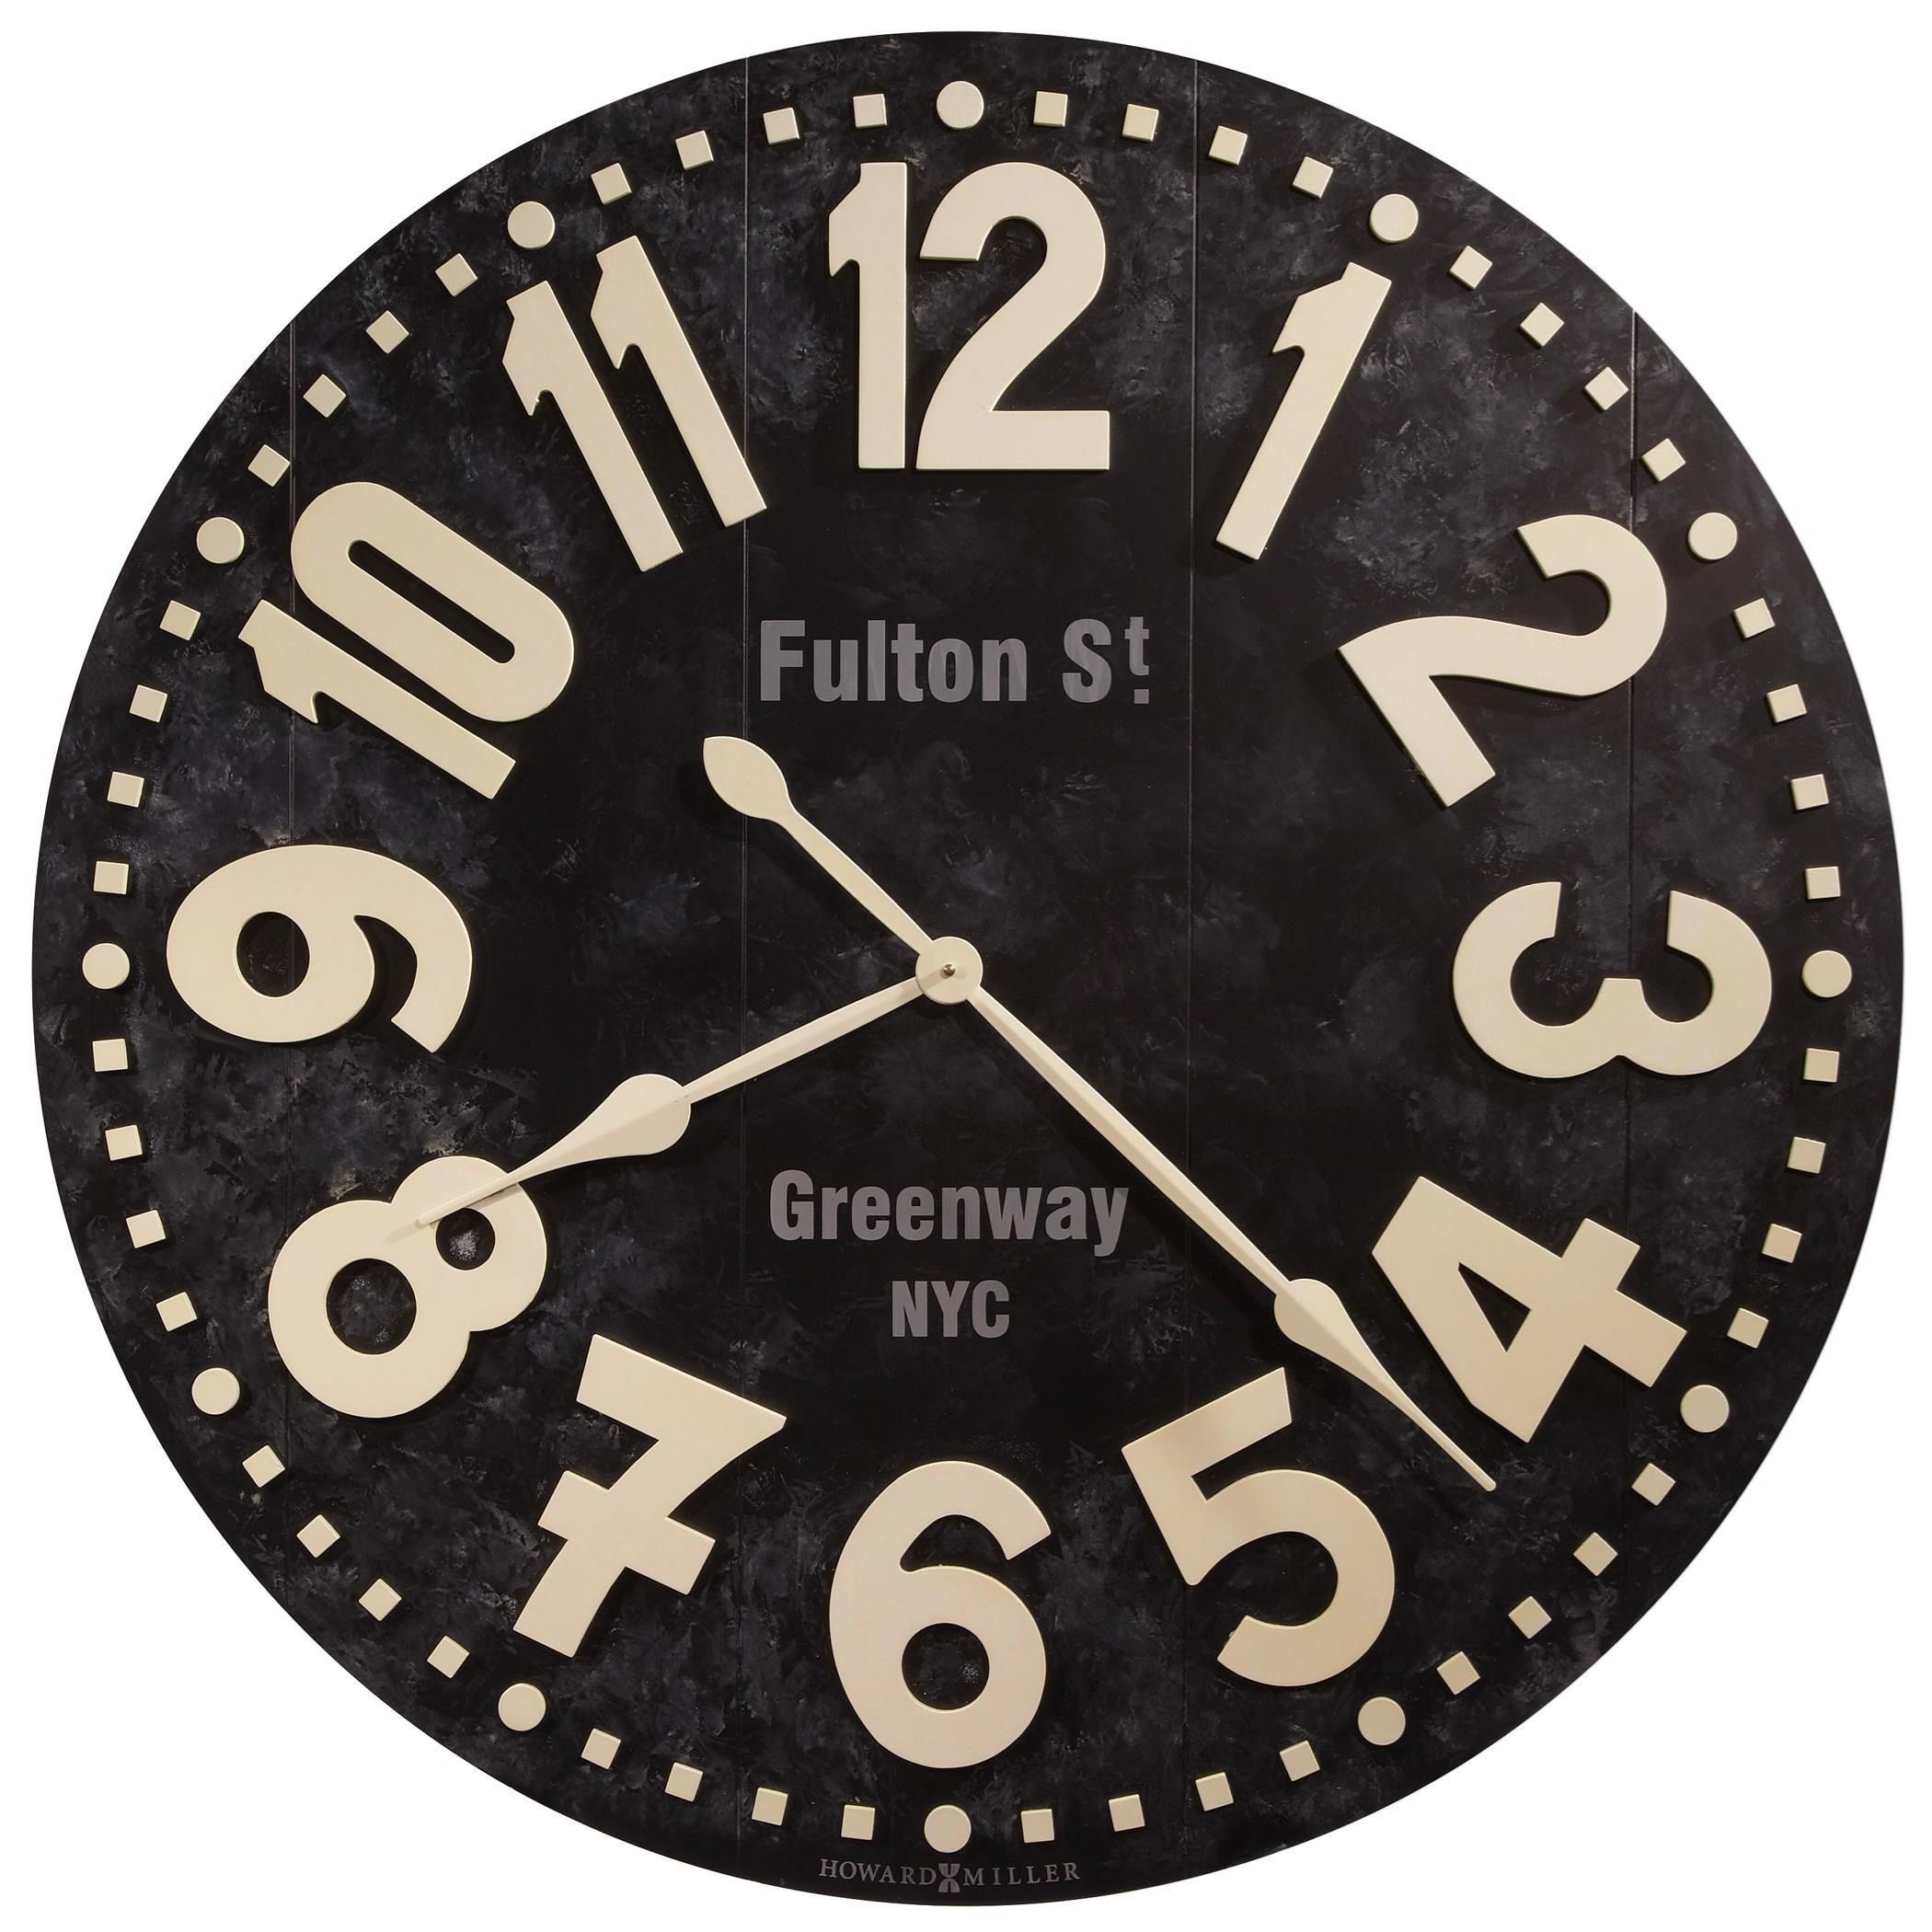 Howard Miller Wall Clocks Fulton Street Wall Clock - Item Number: 625-557